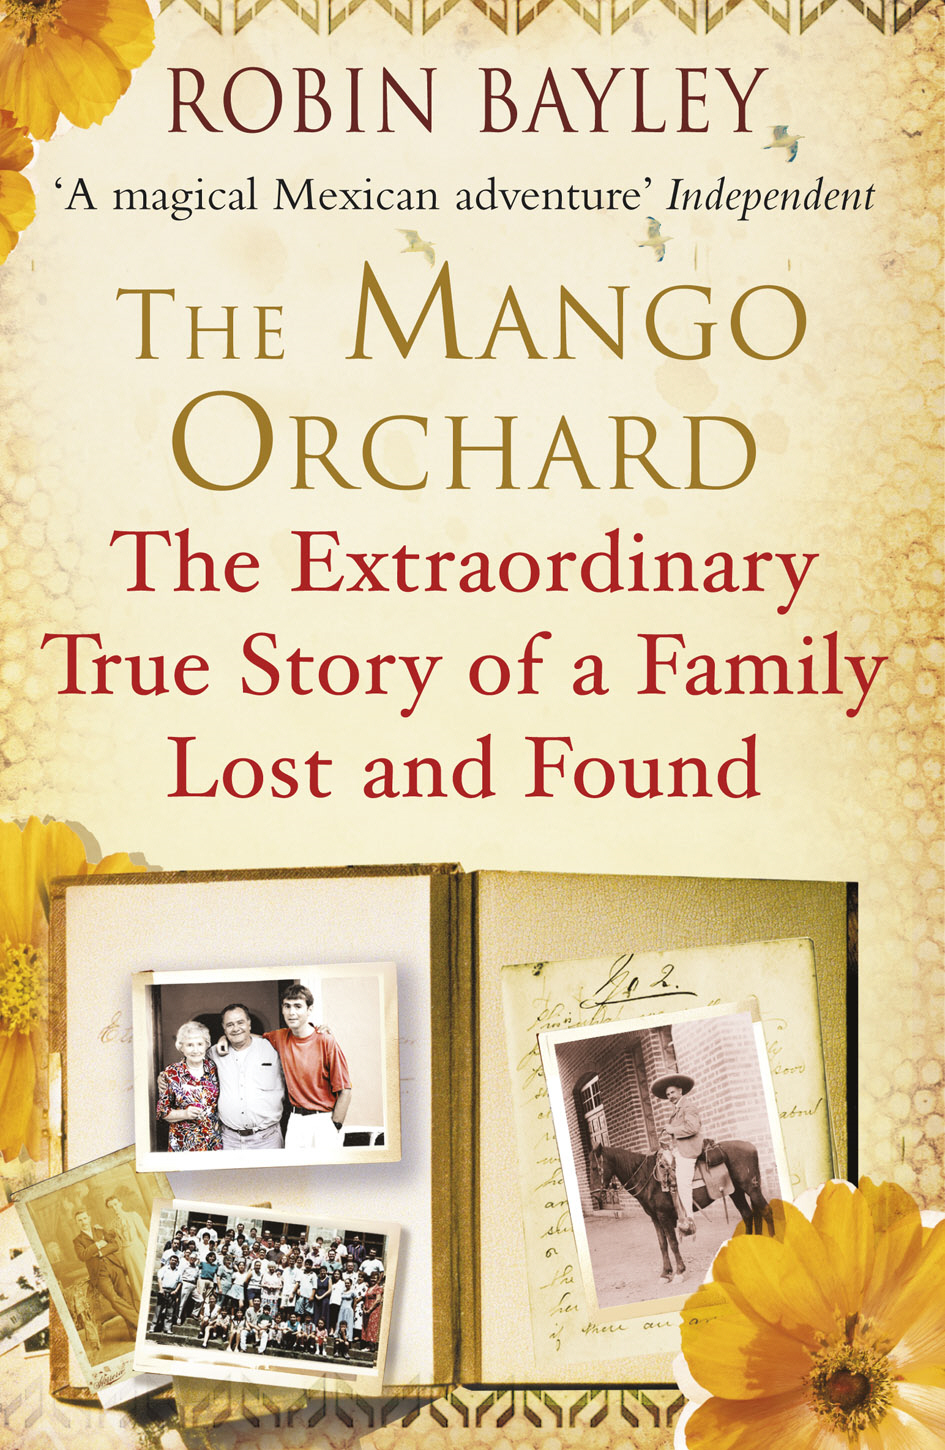 The Mango Orchard The extraordinary true story of a family lost and found